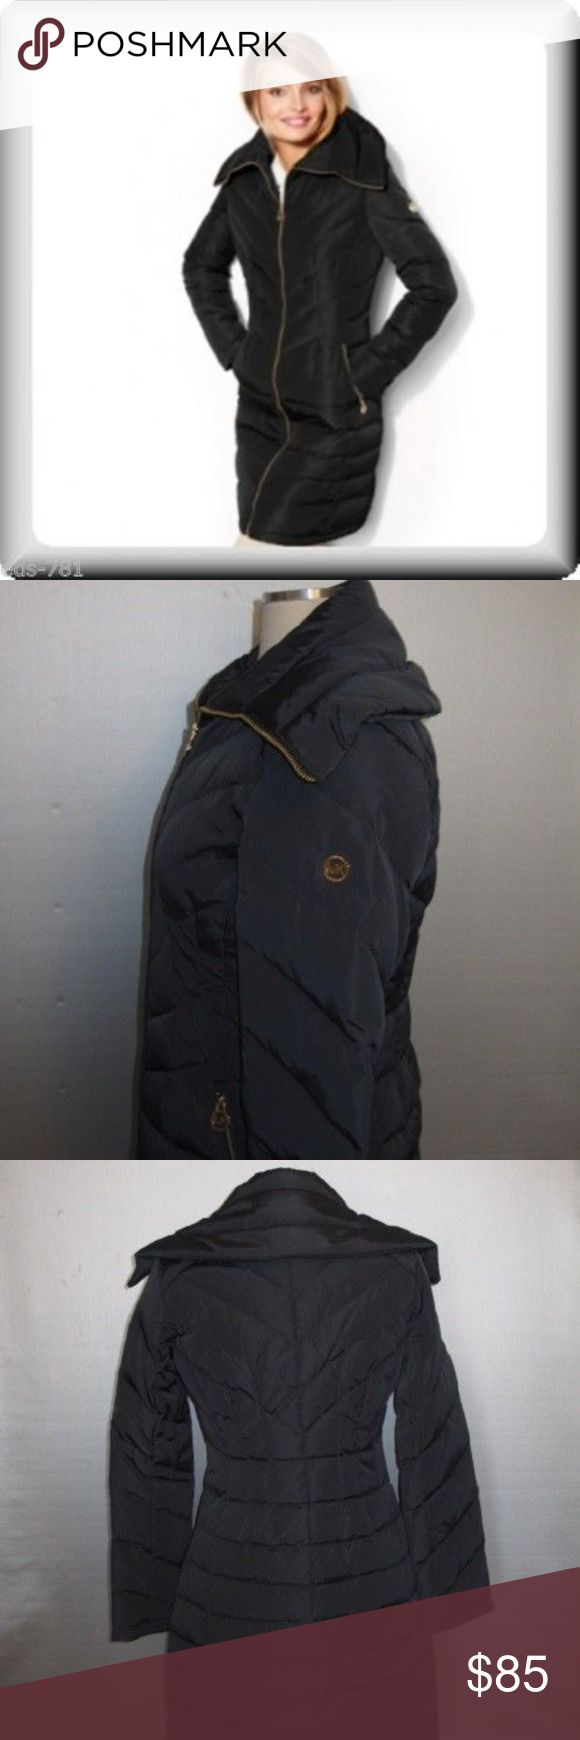 "Michael Kors Quilted Puffer Coat New Michael Kors Chevron Quilted 3/4 down coat with oversized wing collar (zips to a foldover funnel). Stunning dark gray color with gold hardware.  36"" long, with 19.25"" chest (xs) Michael Kors Jackets & Coats Puffers"